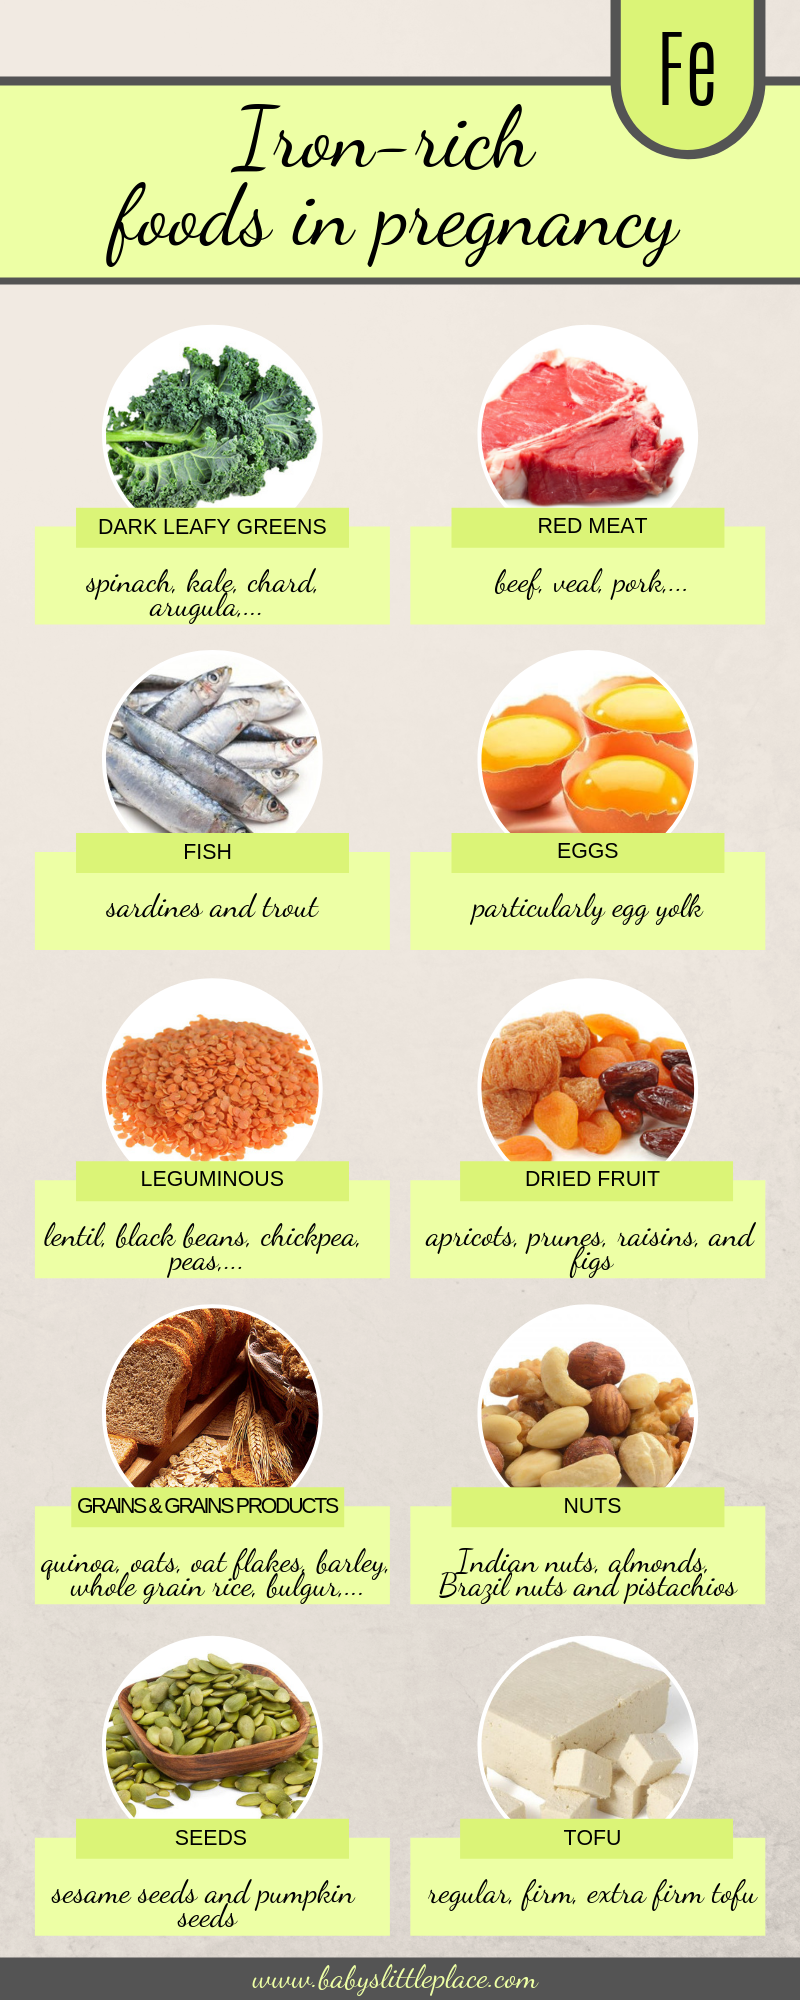 Pin on Early pregnancy foods